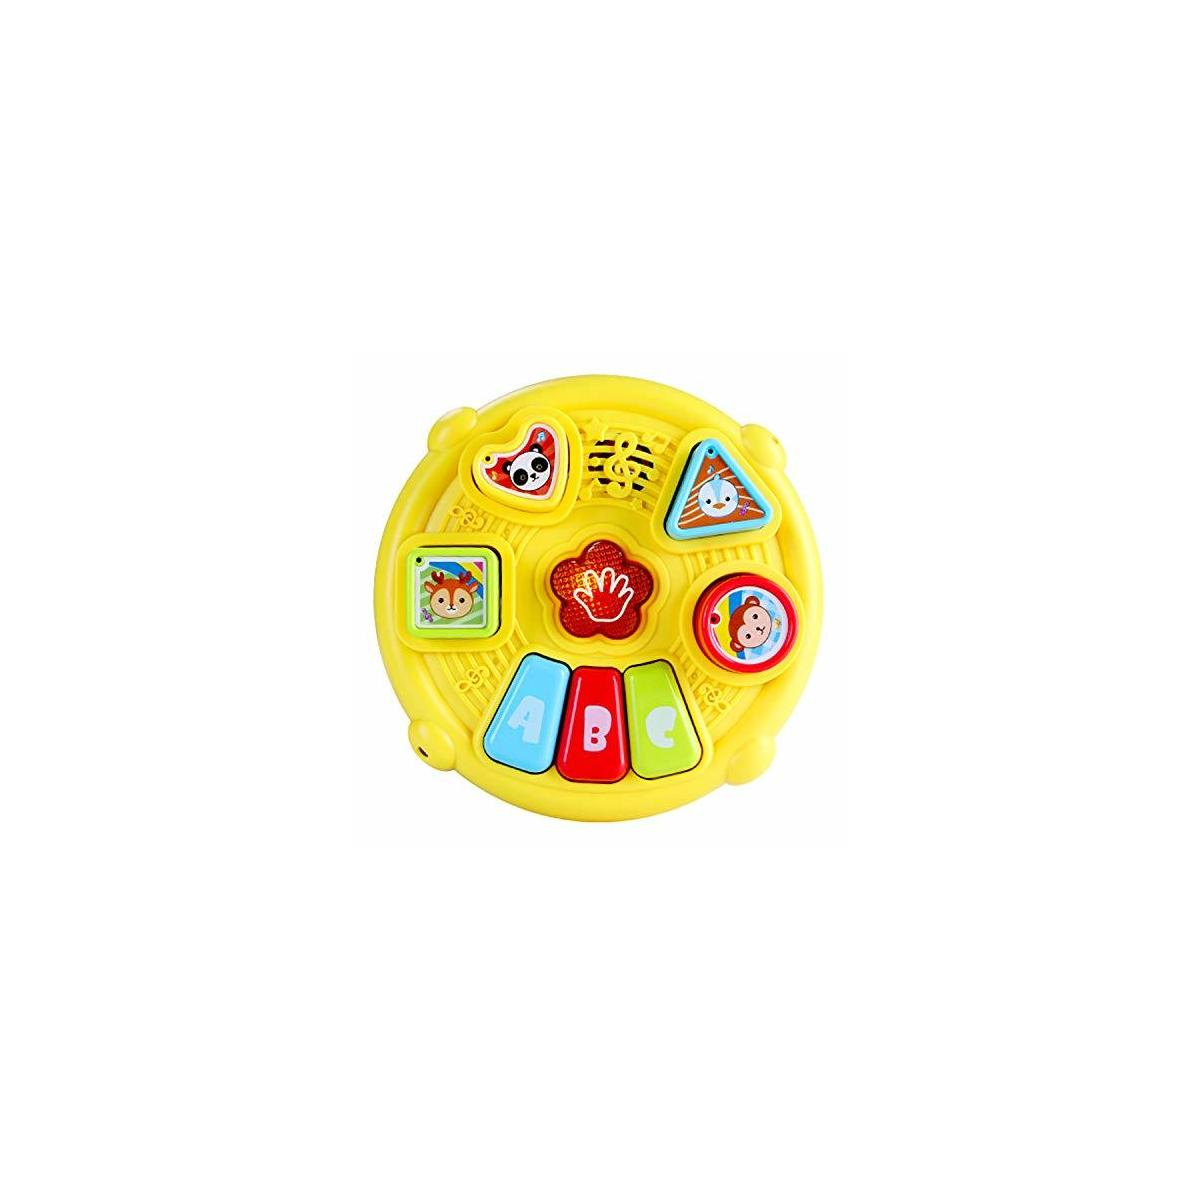 Learn and Groove Color Play Drum and Activity Cube – Baby Drum Toddler Music Toy and Play Set – Learning Mode, Drum Mode and Piano Button Mode – for Children 3+ Years Old